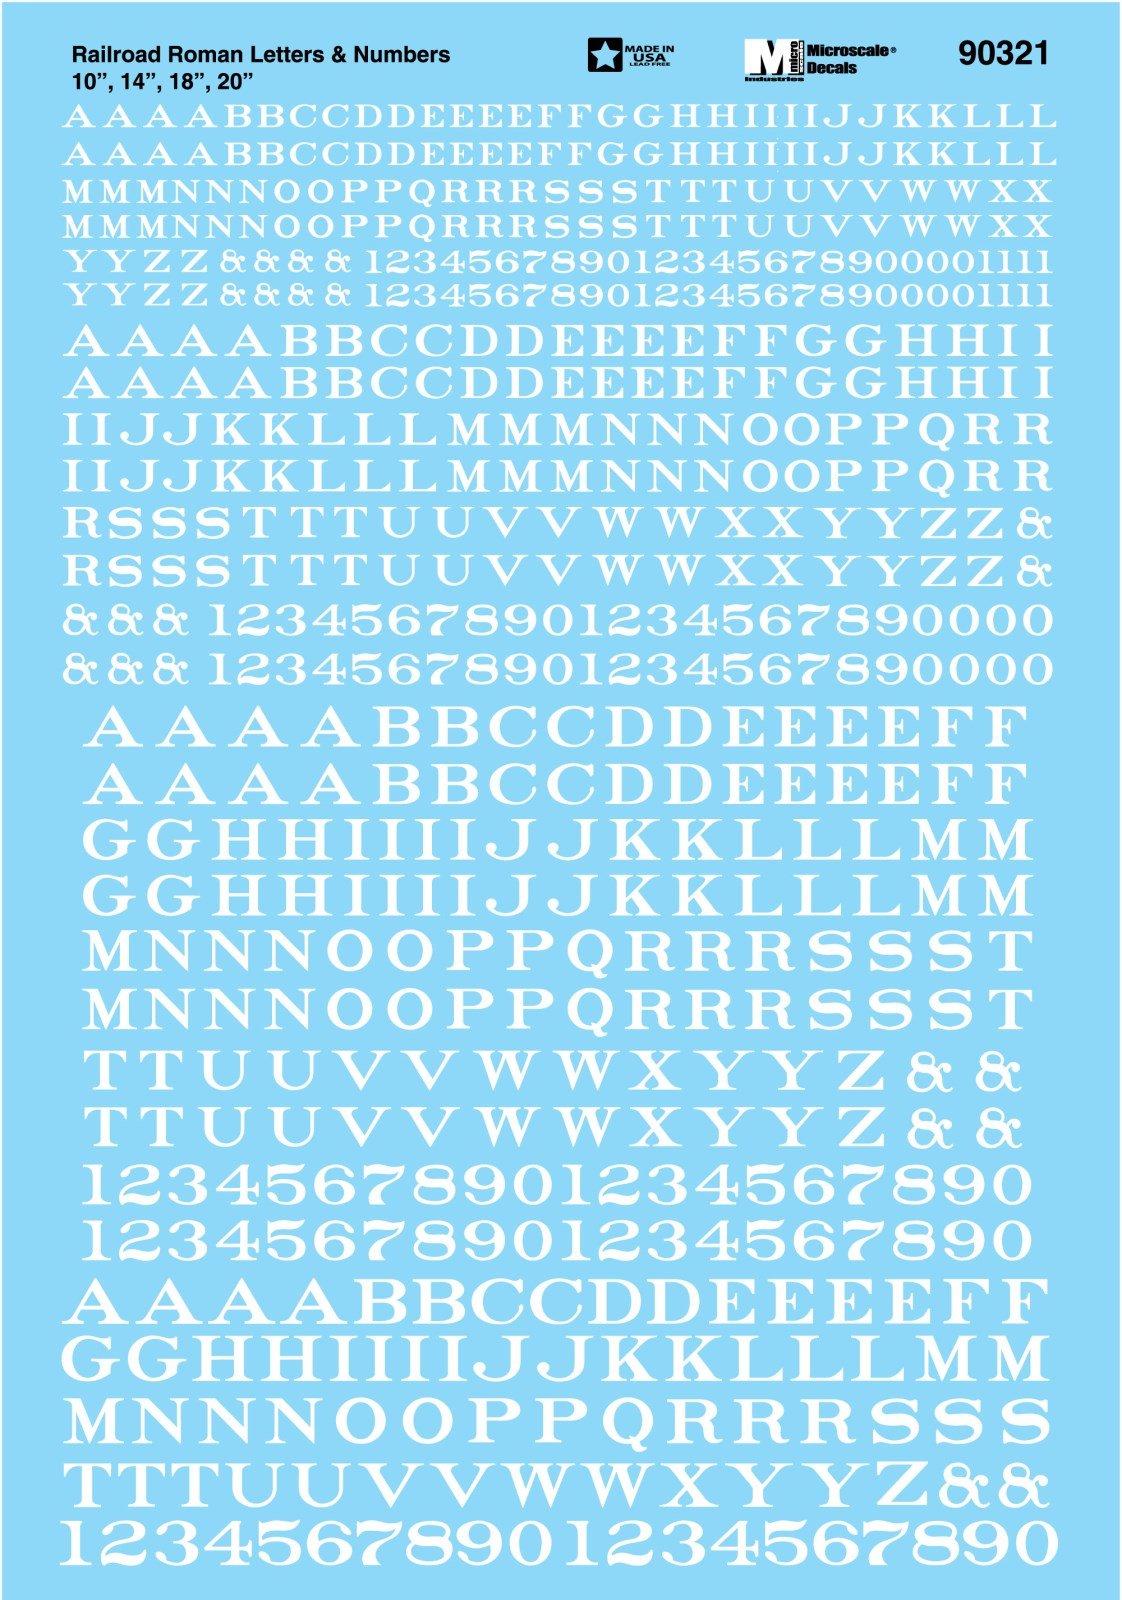 Microscale Alphabet Decal Set -- Railroad Roman Letters & Numbers 10, 14,  18, 20